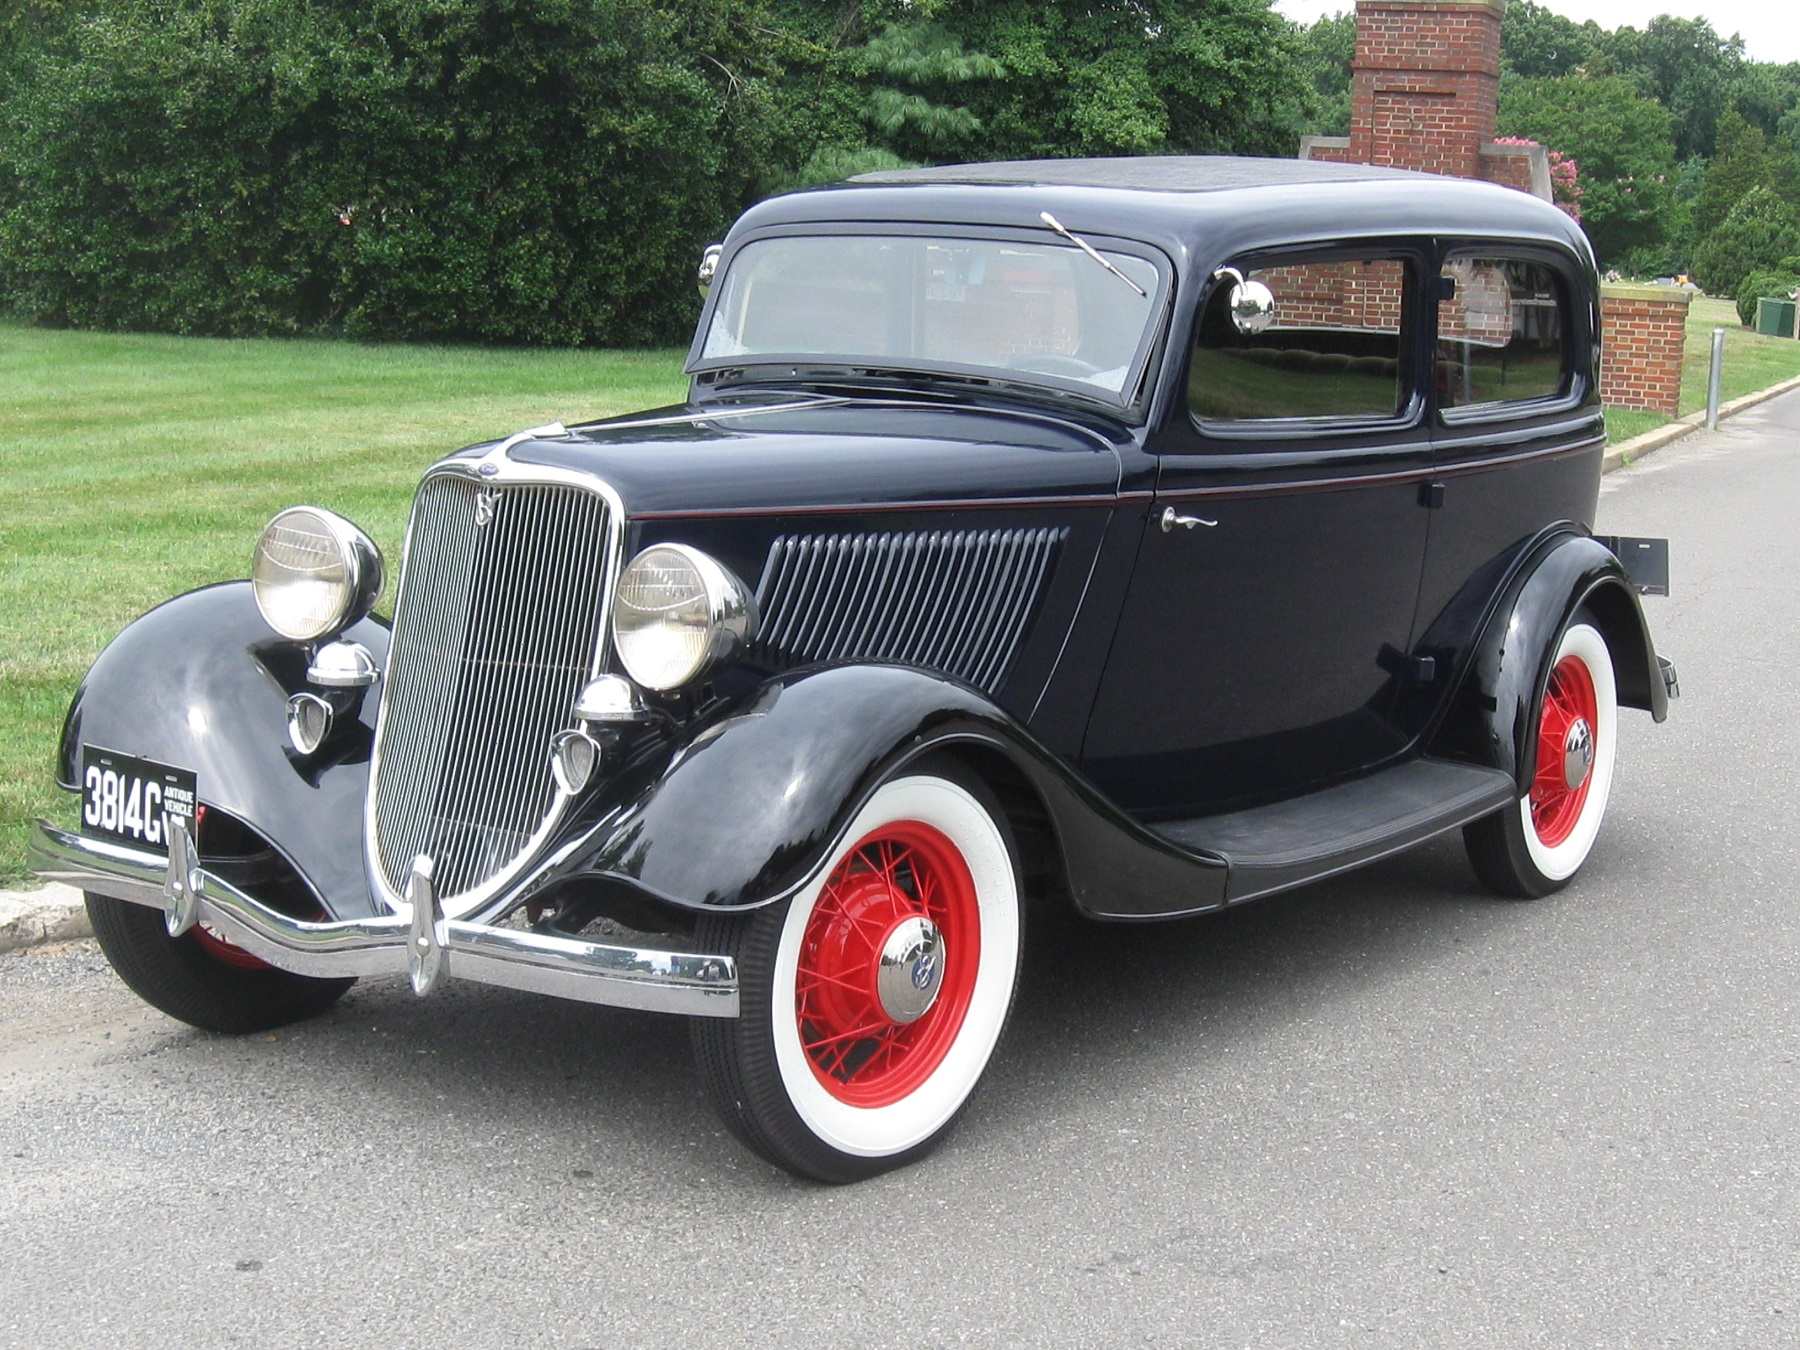 1933 Ford V-8 Sedan was Popular with the Public & 1933 Ford: V-8 Sedan was Popular with the Public - CarHub markmcfarlin.com